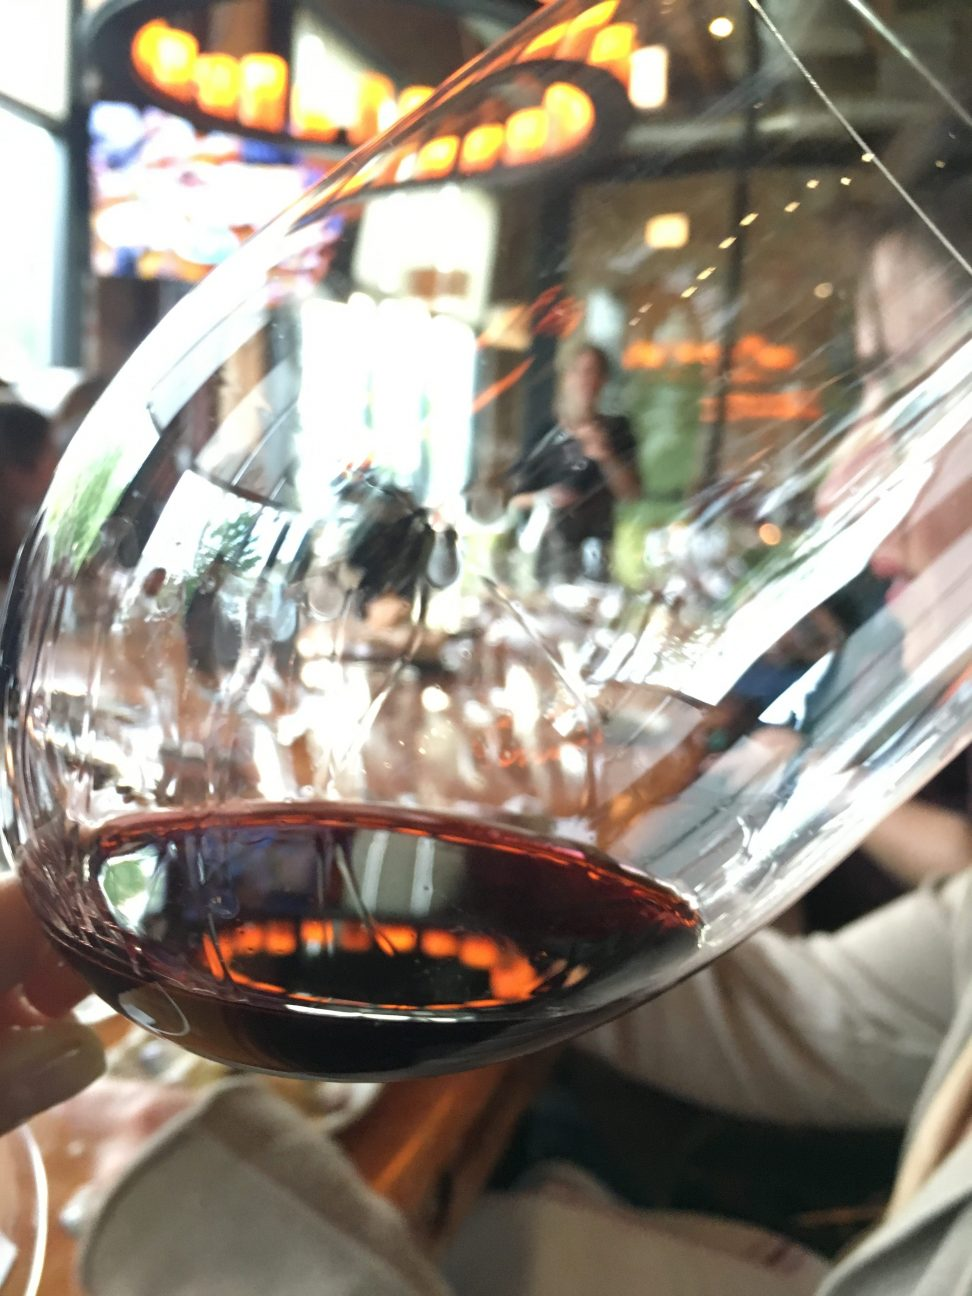 Enoversity has the best wine tasting class in Chicago.